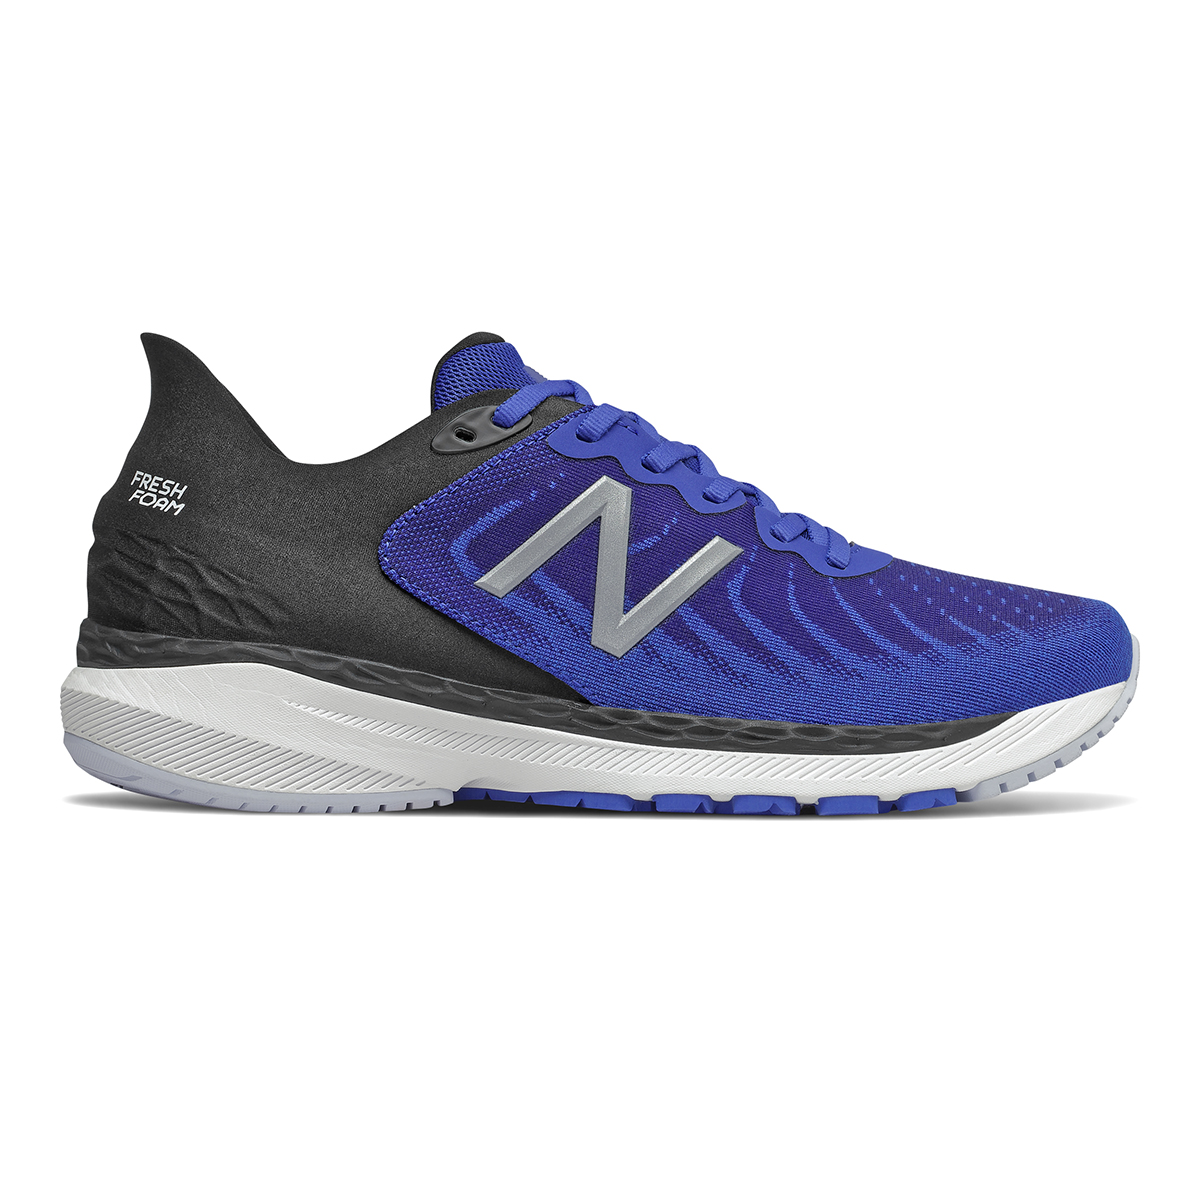 Men's New Balance 860V11 Running Shoe - Color: Team Royal - Size: 7 - Width: Wide, Team Royal, large, image 1